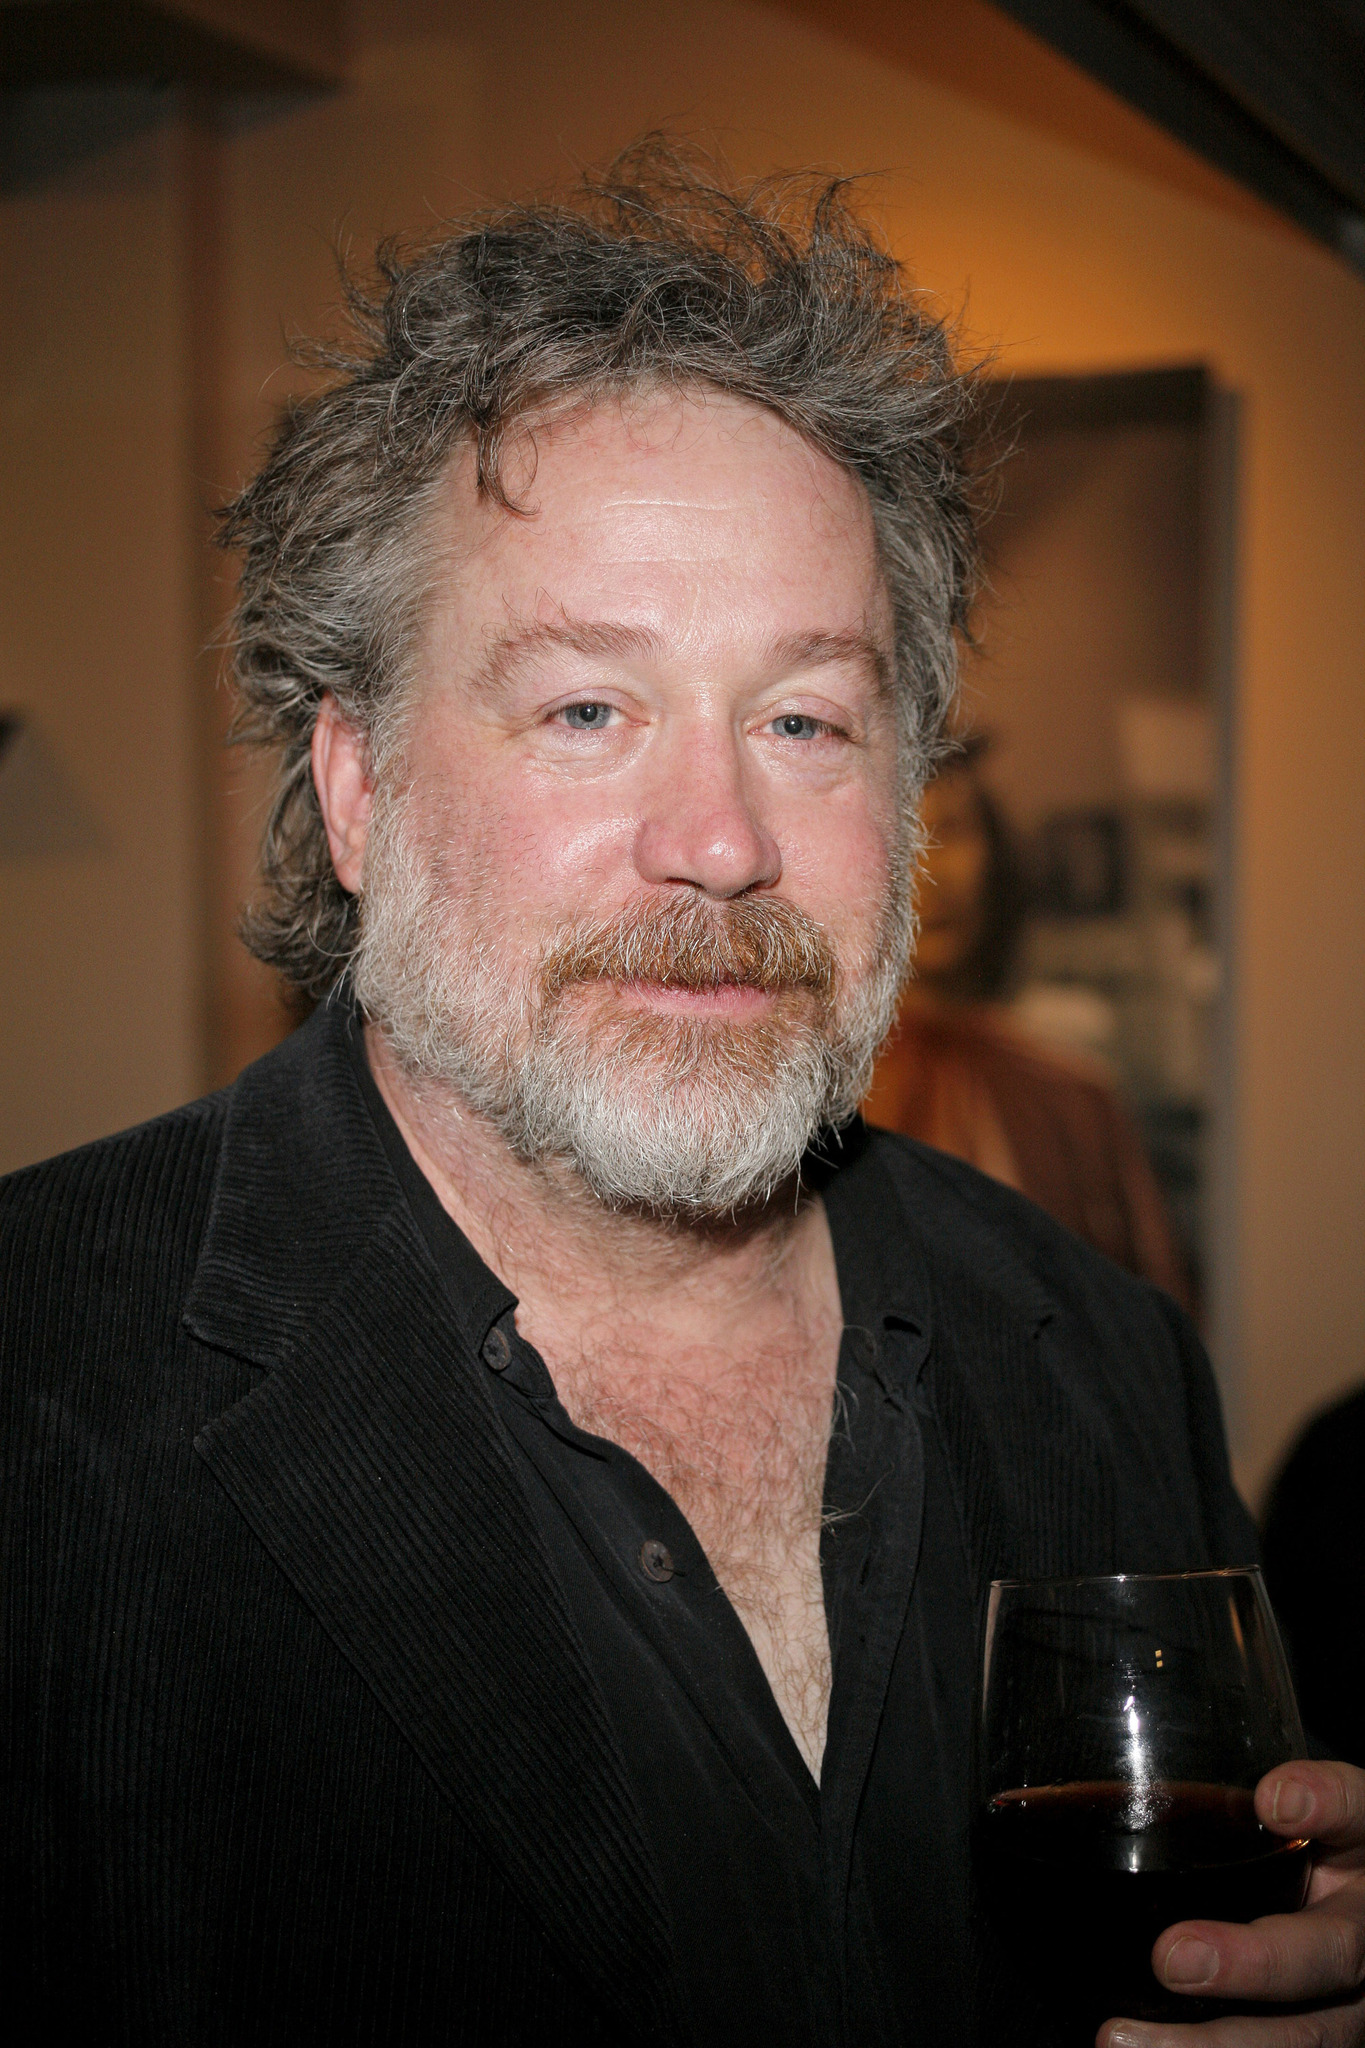 Tom Hulce is holding a wine glass in his hand